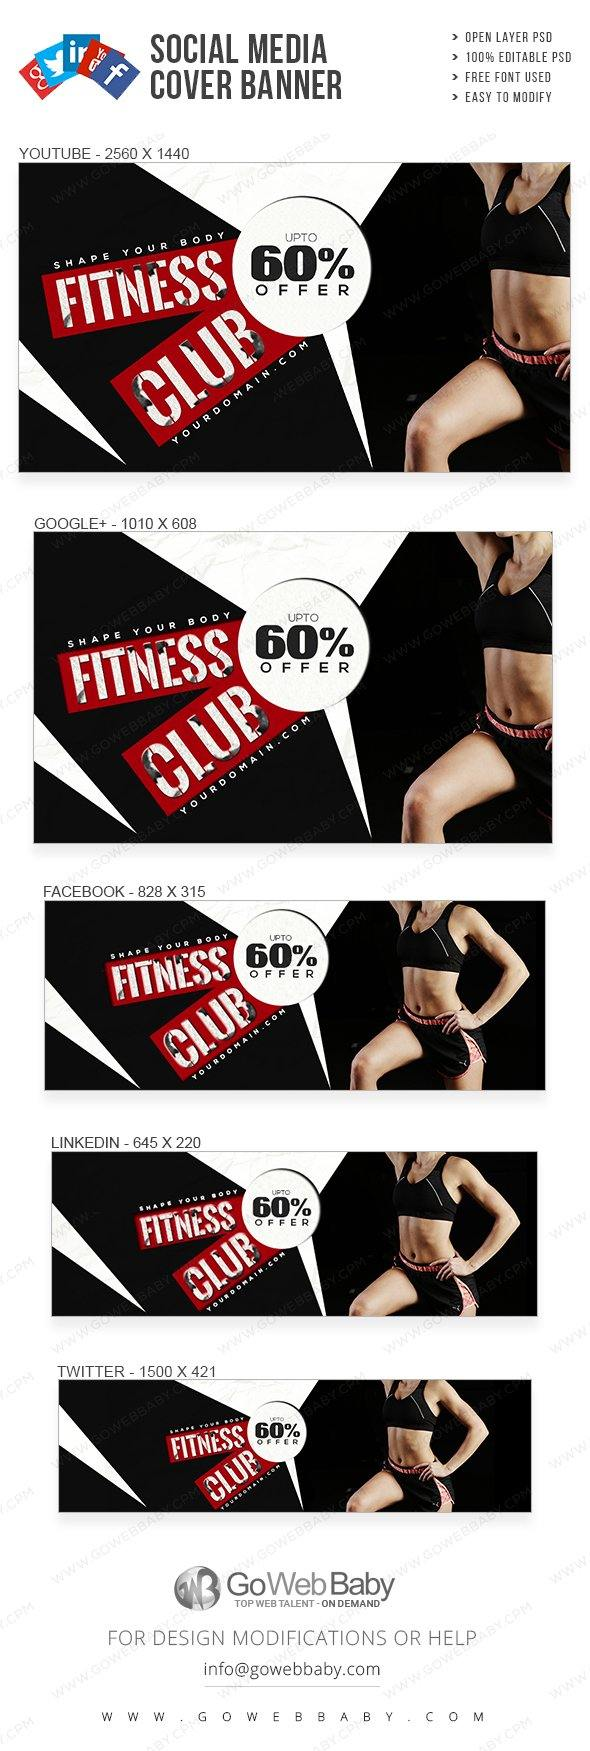 Social Media Cover Banner - Women's Fitness For Website Marketing